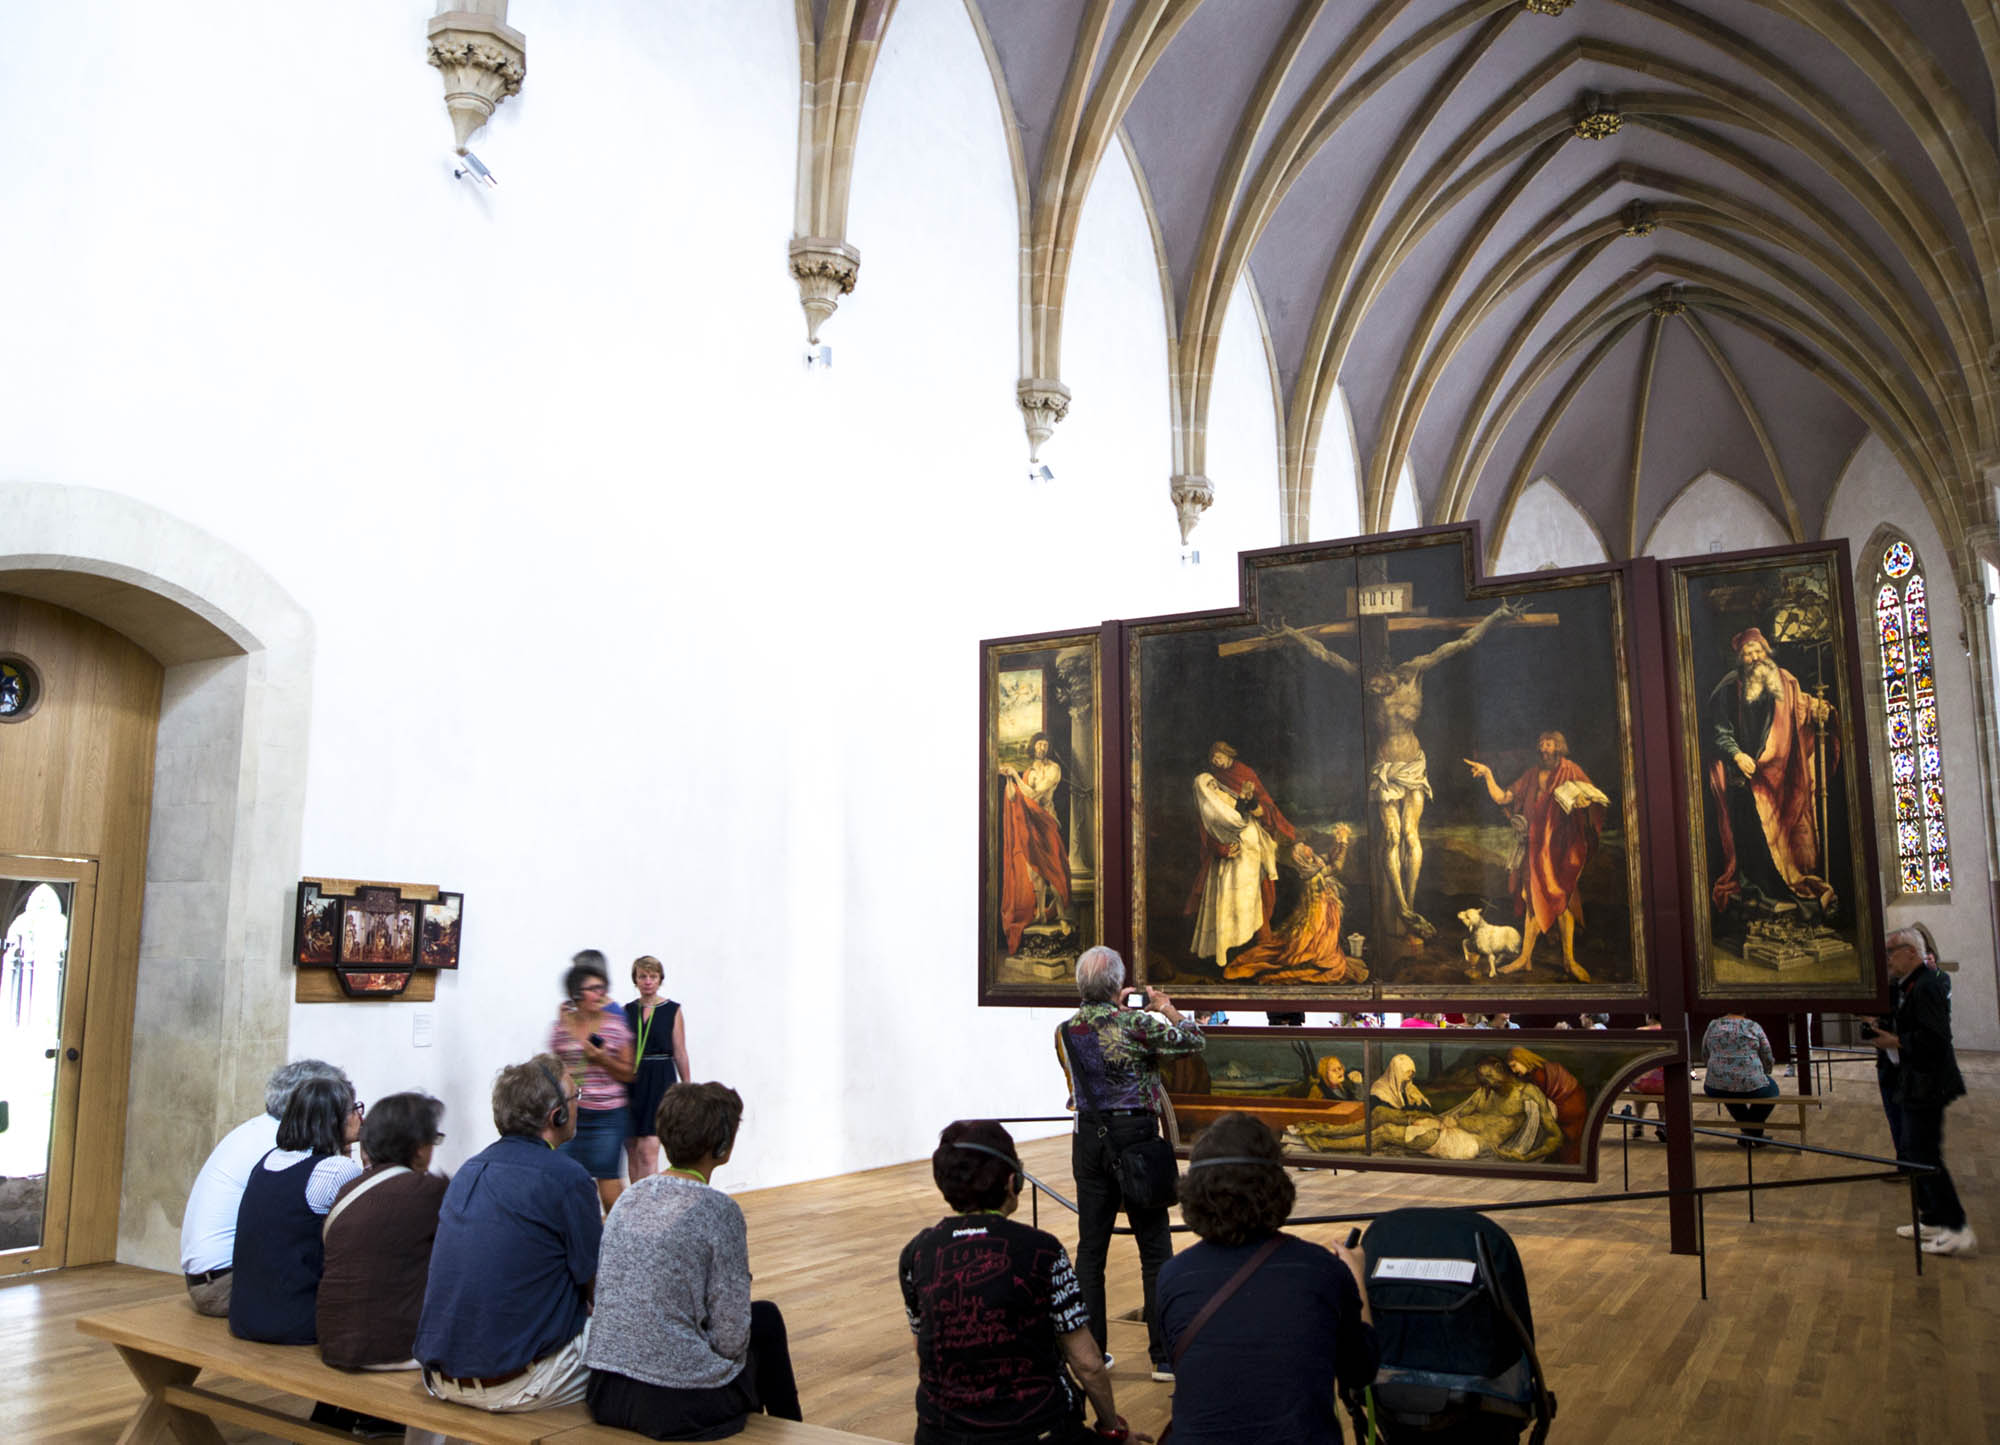 Chapelle abritant le retable d'Issenheim Musée Unterlinden, Colmar, Alsace / www.musee-unterlinden.com Crédit photo : Office de tourisme de Colmar